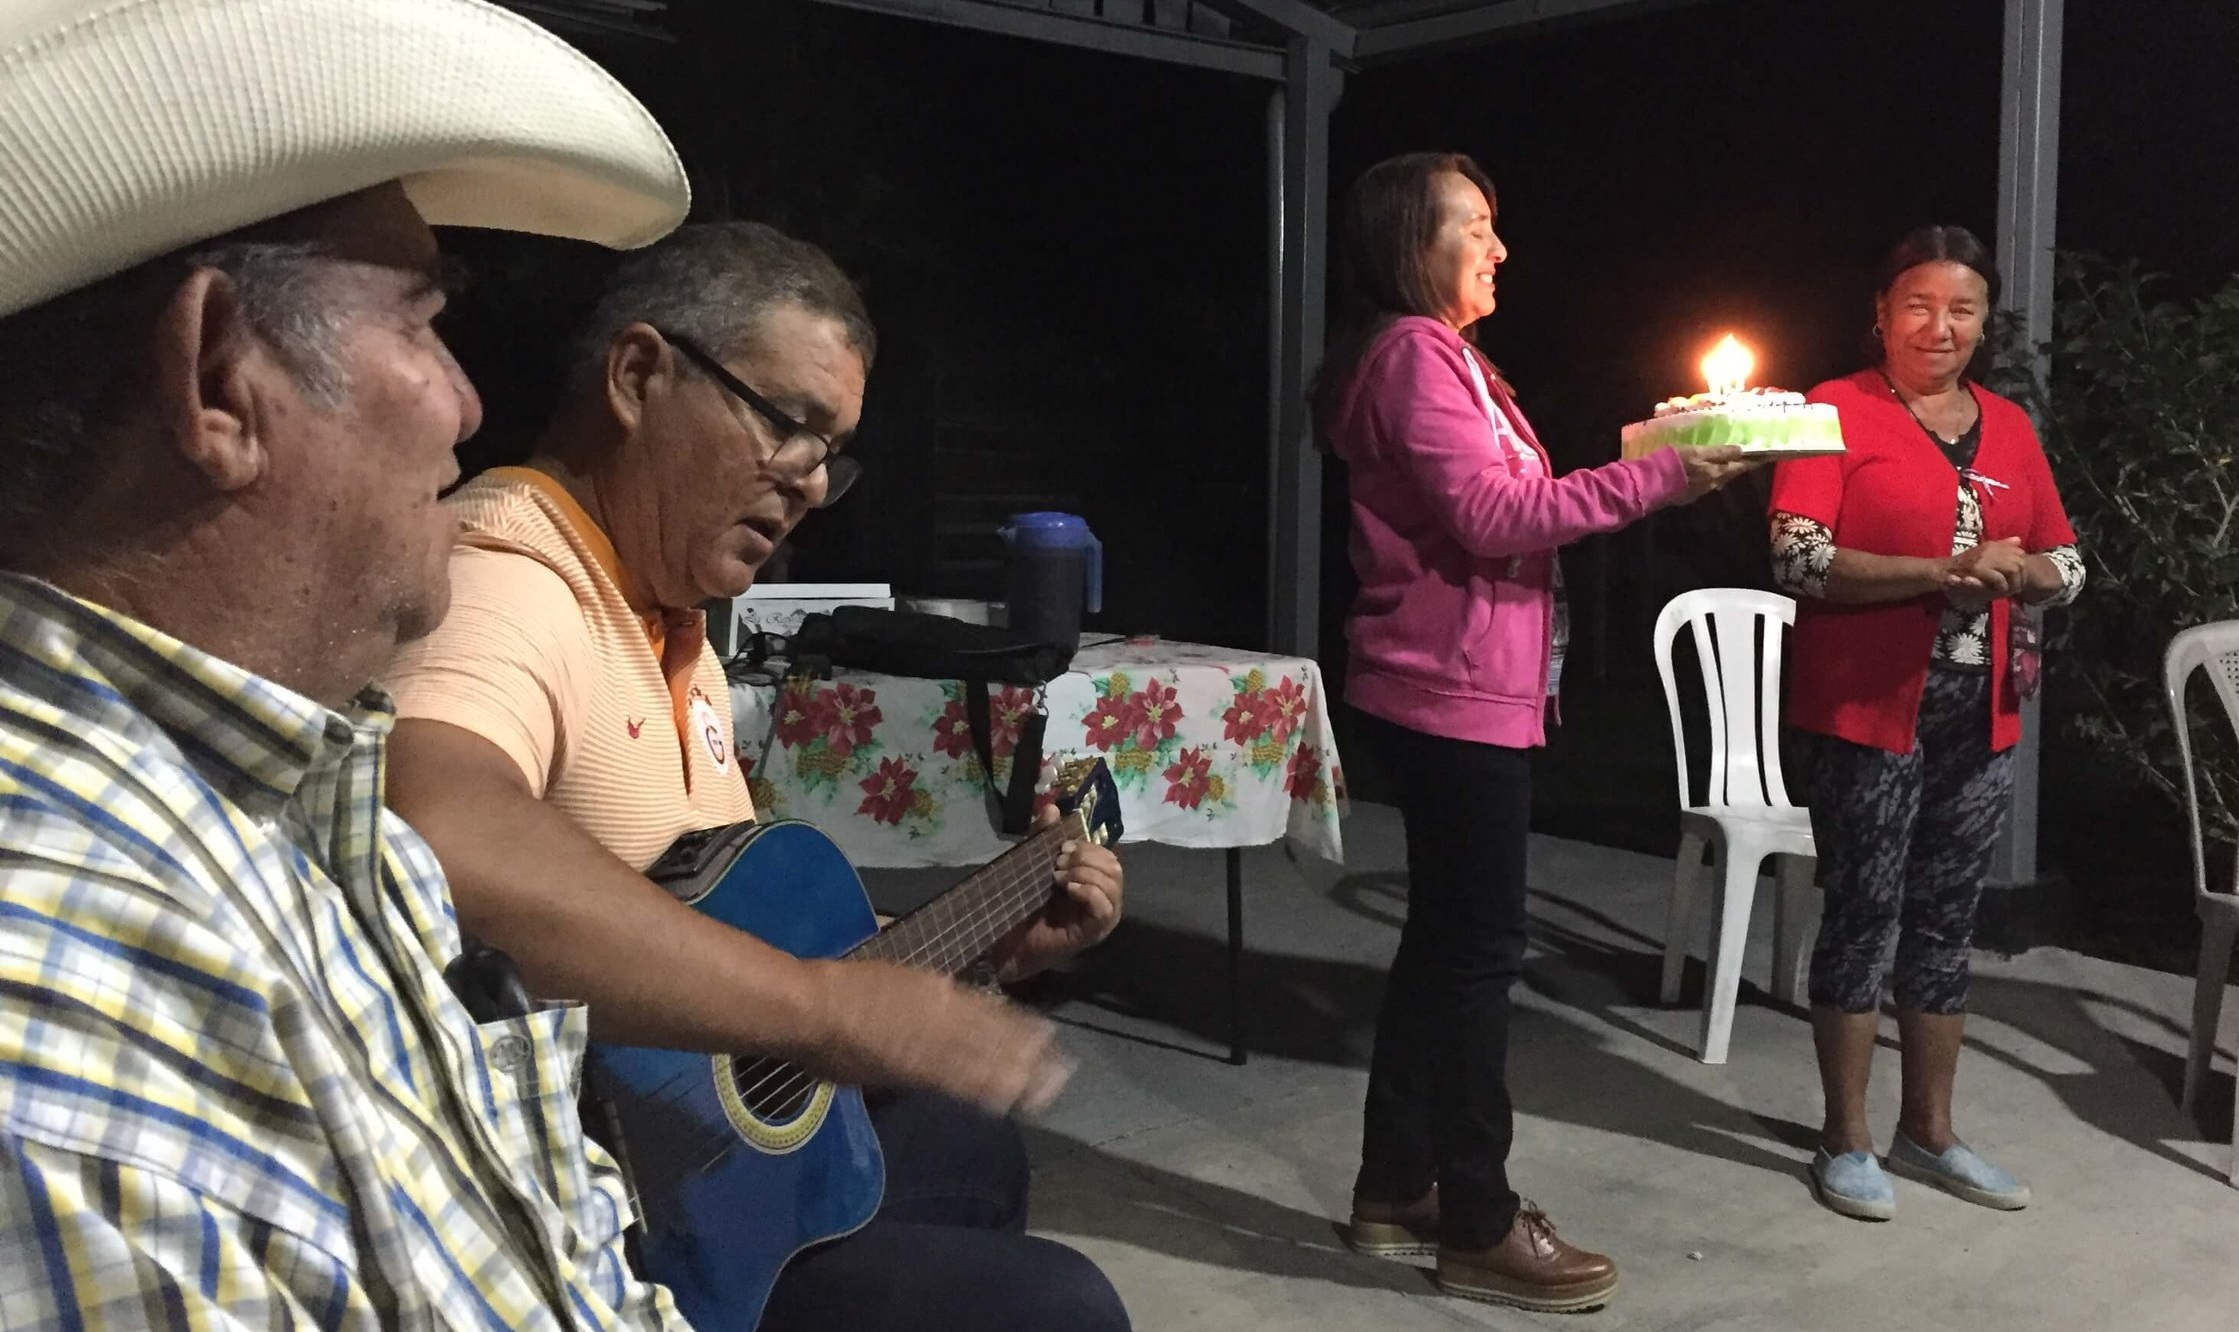 In a PSE group in Santa Rosa de Lima, Cesar looks on as Humberto plays a birthday song on his guitar while his wife Enma brings out a birthday cake for a member of their group.